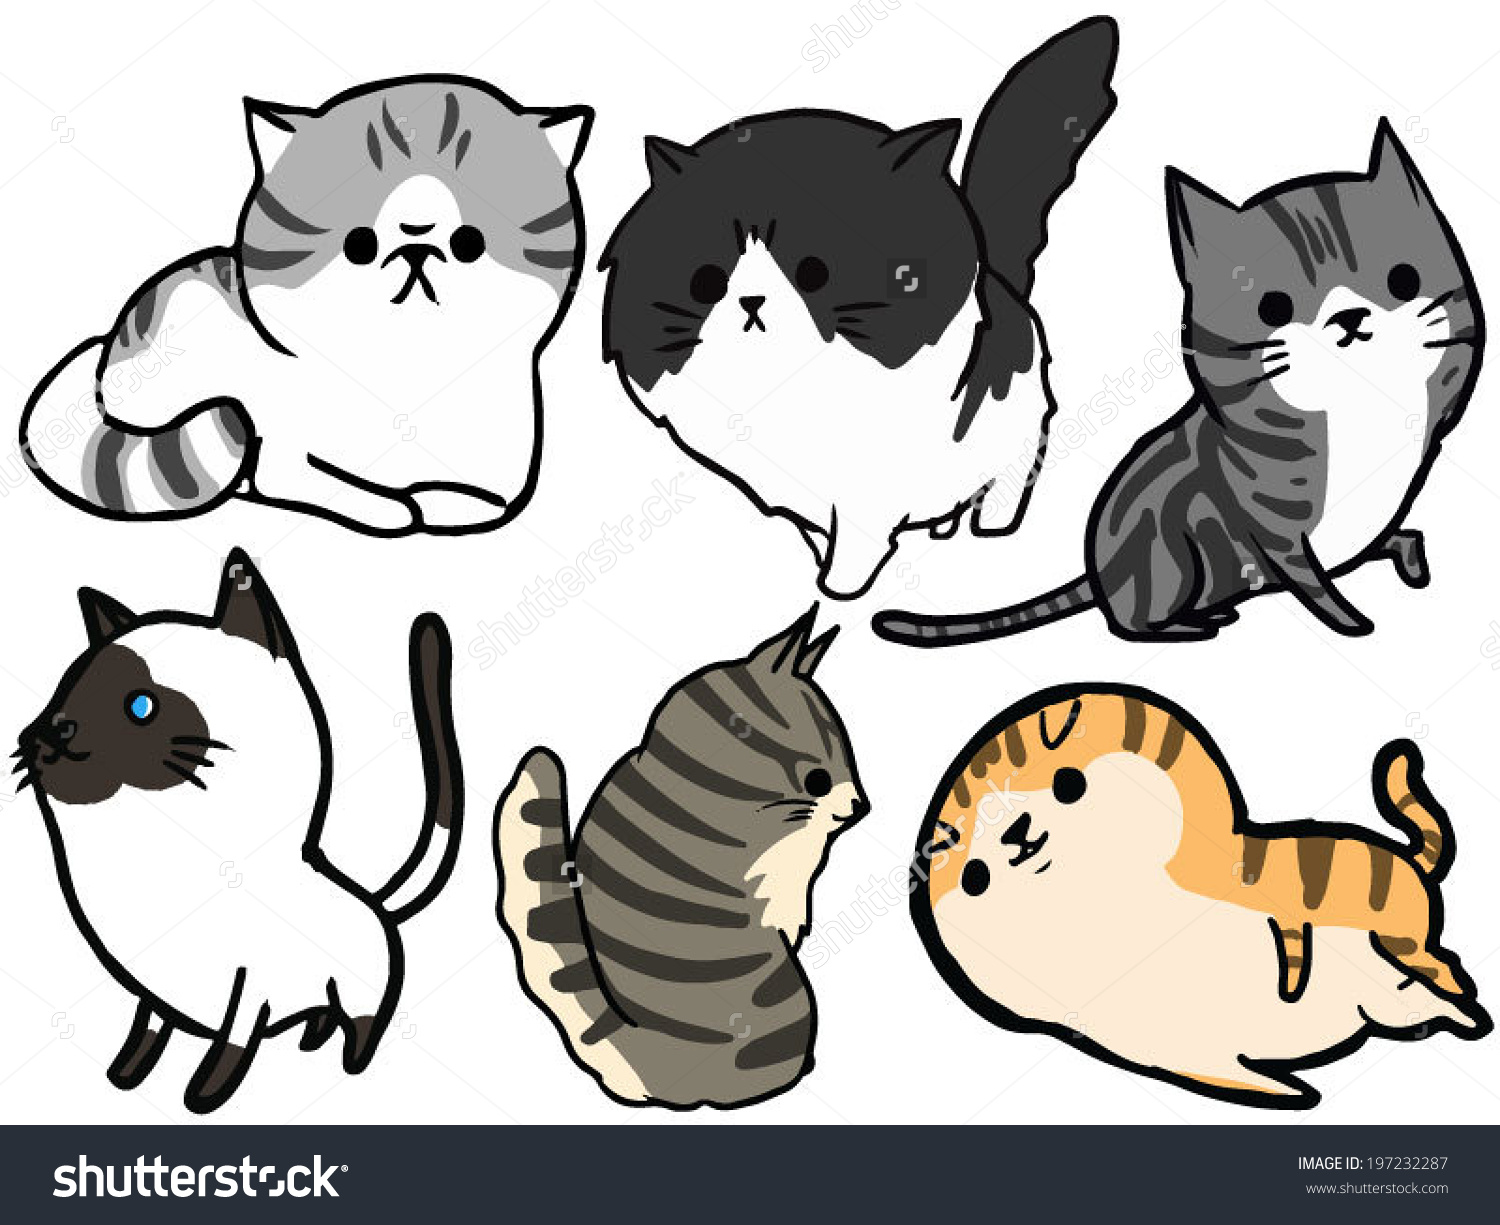 Scottish Fold clipart #8, Download drawings